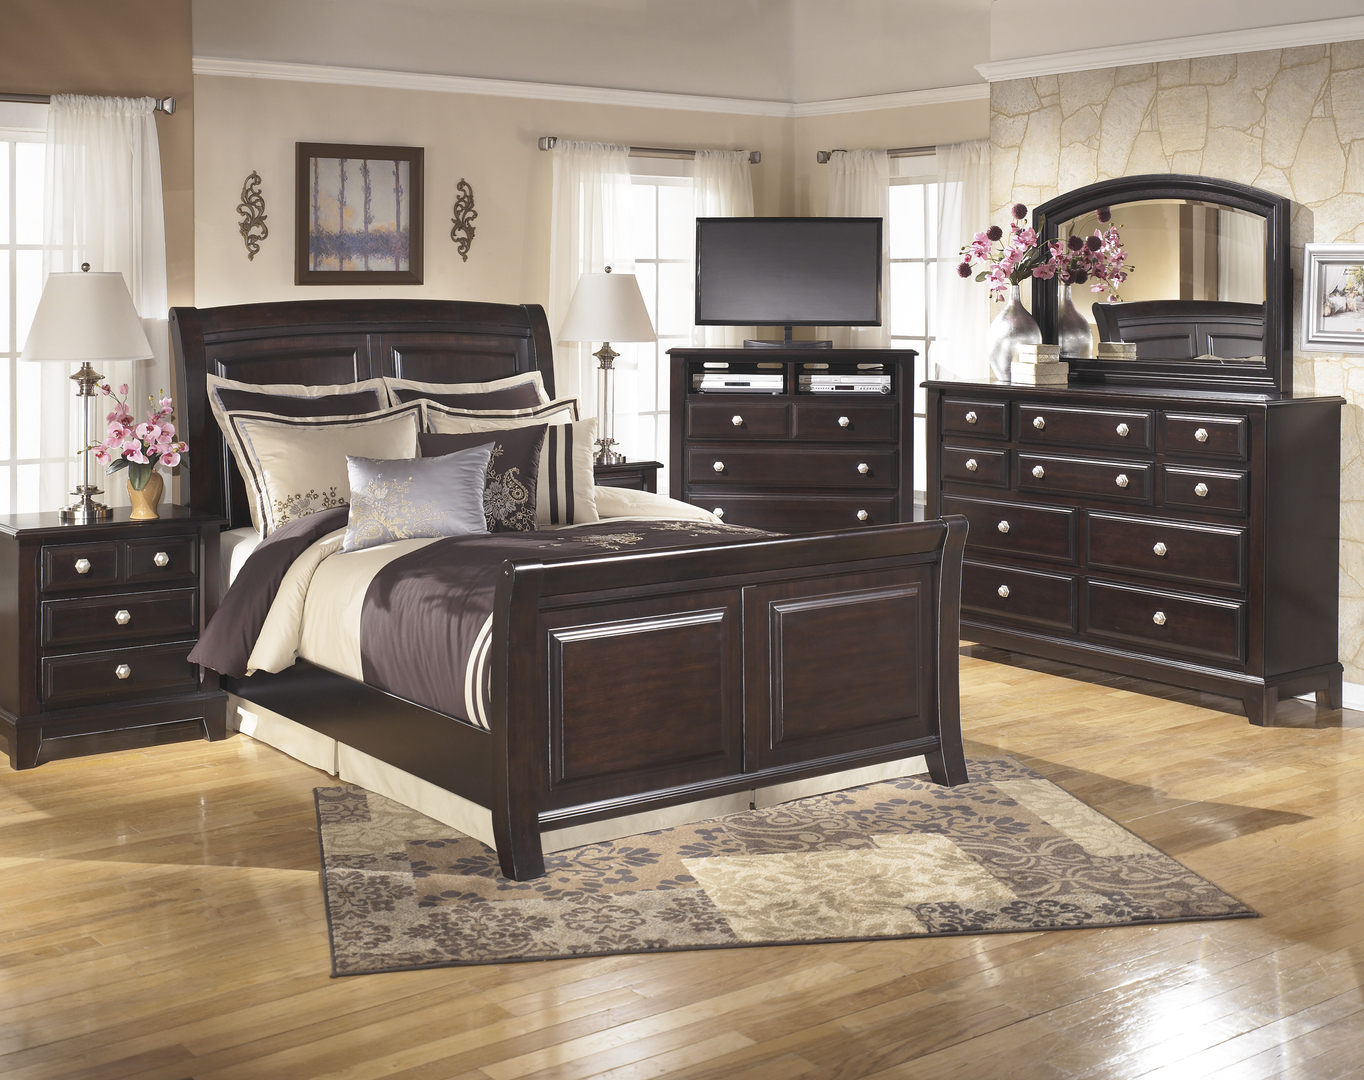 greg majors auctions in houston tx bedroom furniture - Houston Bedroom Furniture